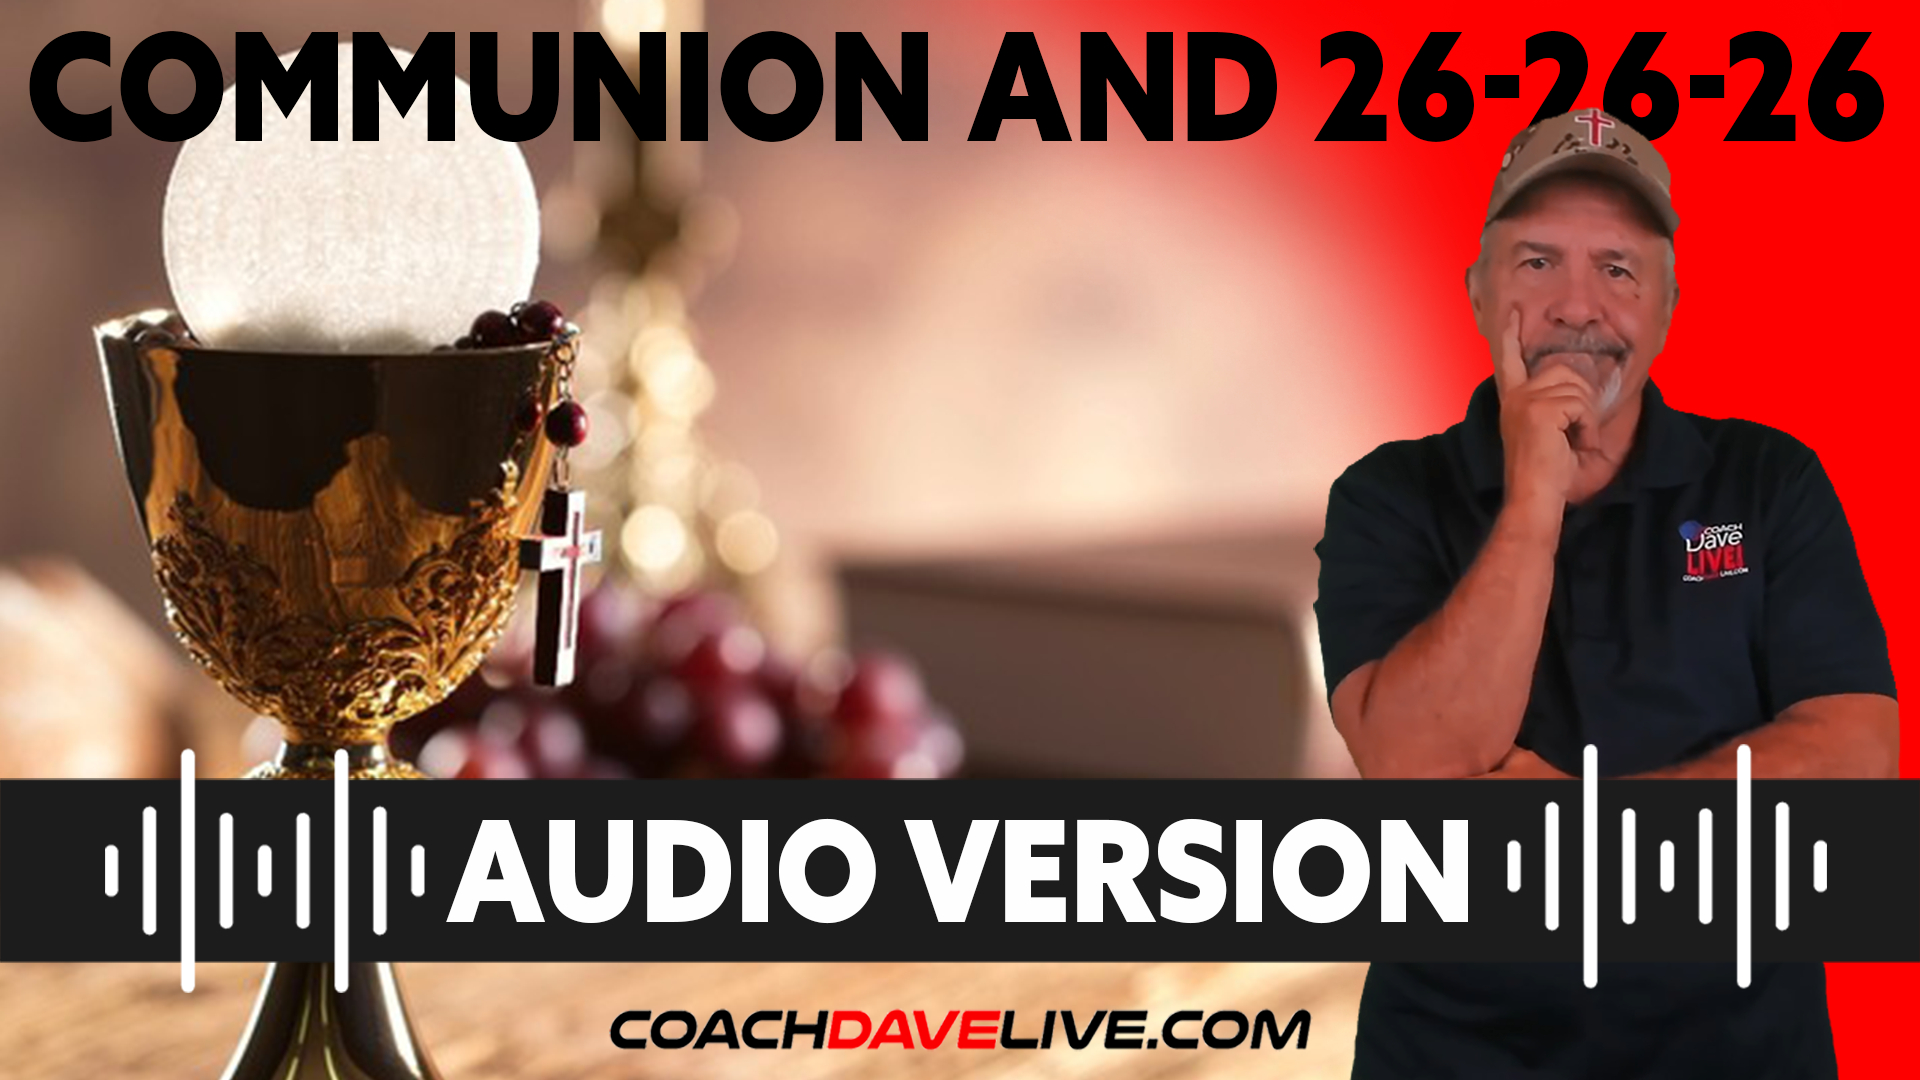 Coach Dave LIVE | 9-10-2021 | COMMUNION AND 26-26-26 - AUDIO ONLY